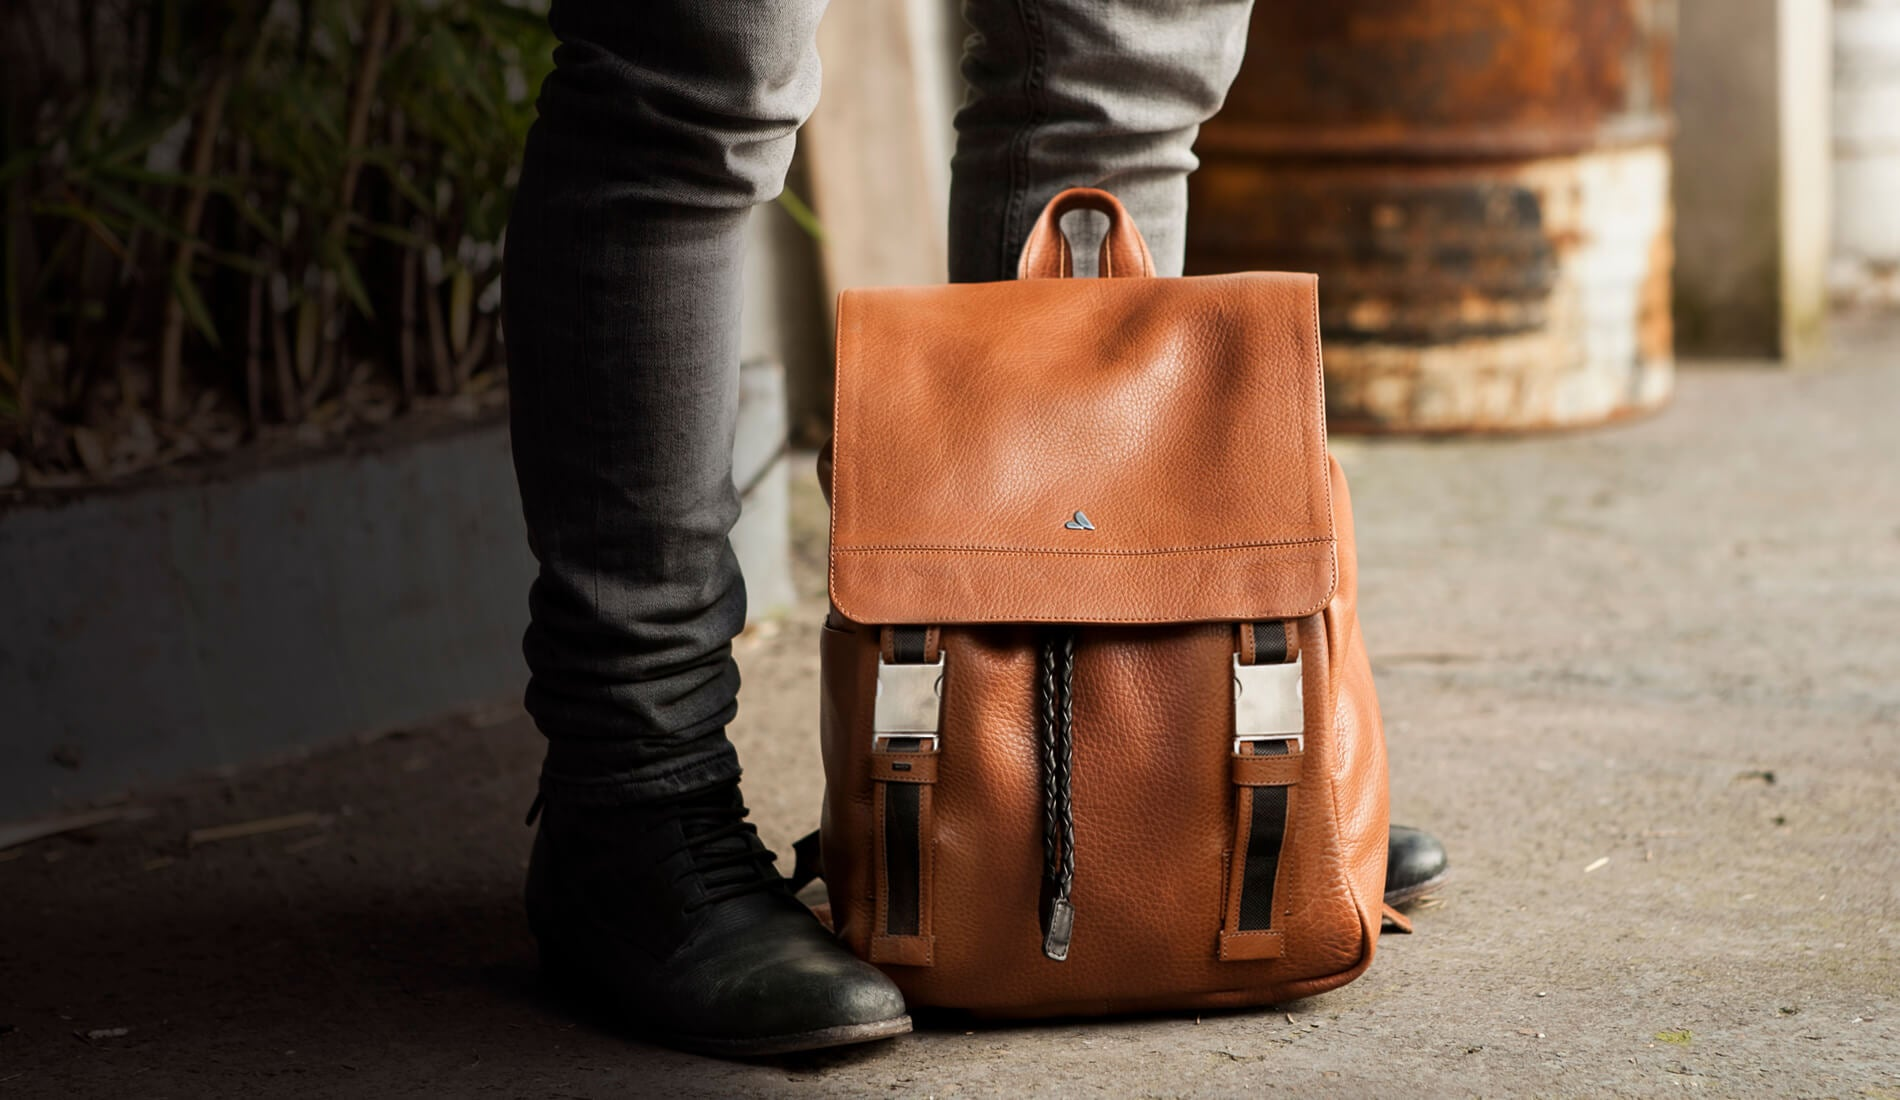 EXPLORE AND DISCOVER LEATHER BACKPACK-VINTAGE STYLE 7a124b032581b